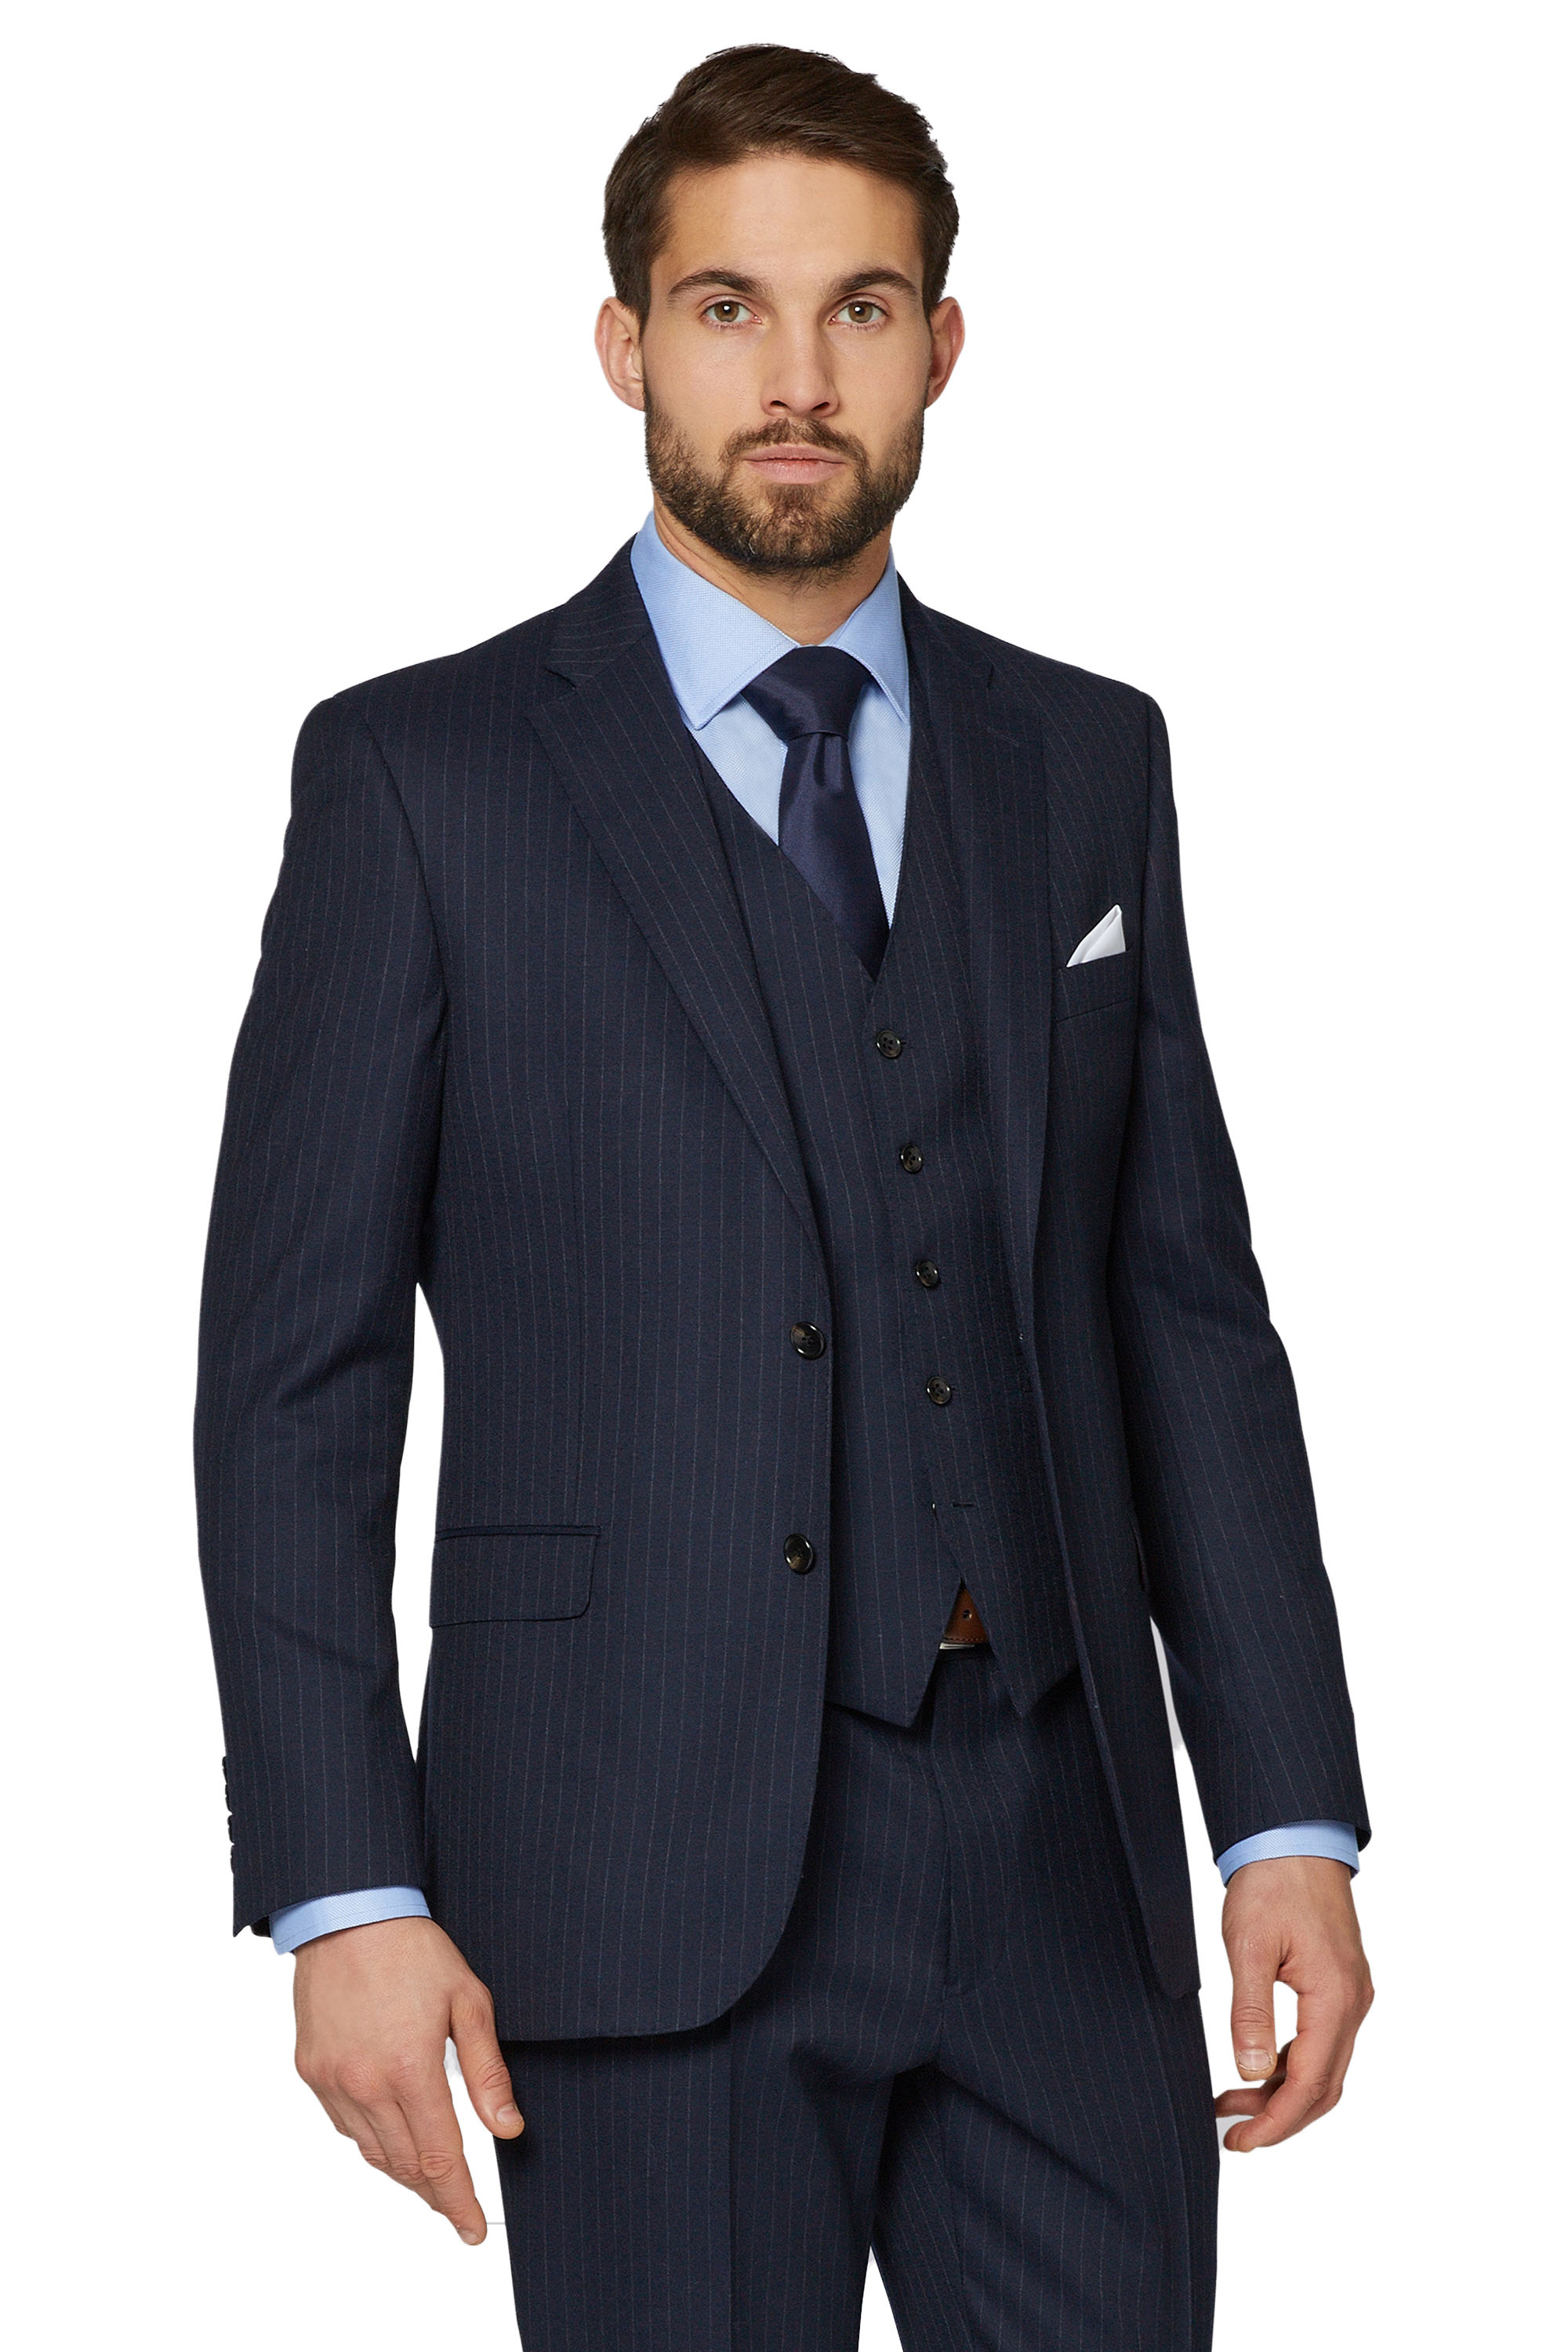 26d7f4227f5d Savoy Taylors Guild Mens Navy Suit Jacket Chalk Striped Regular Fit Pure  Wool